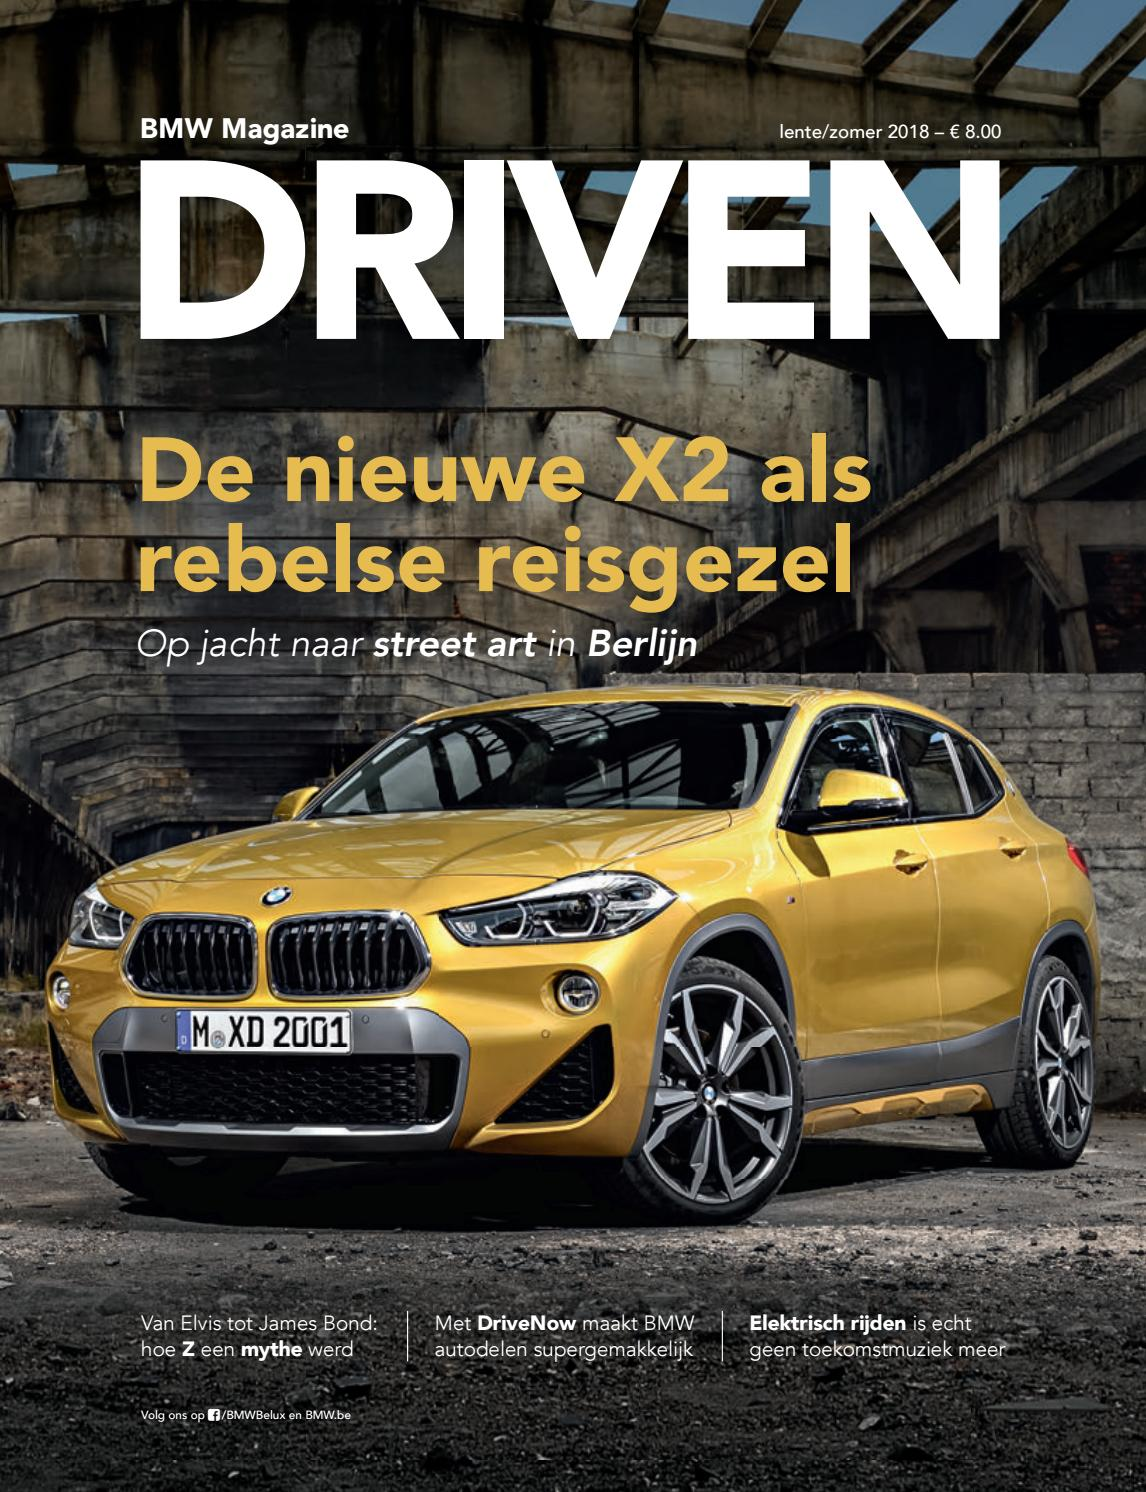 Led Verlichting Bmw X1 Bmw Magazine Driven Nl 2018 1 Zomer By Bmw Group Belux Issuu